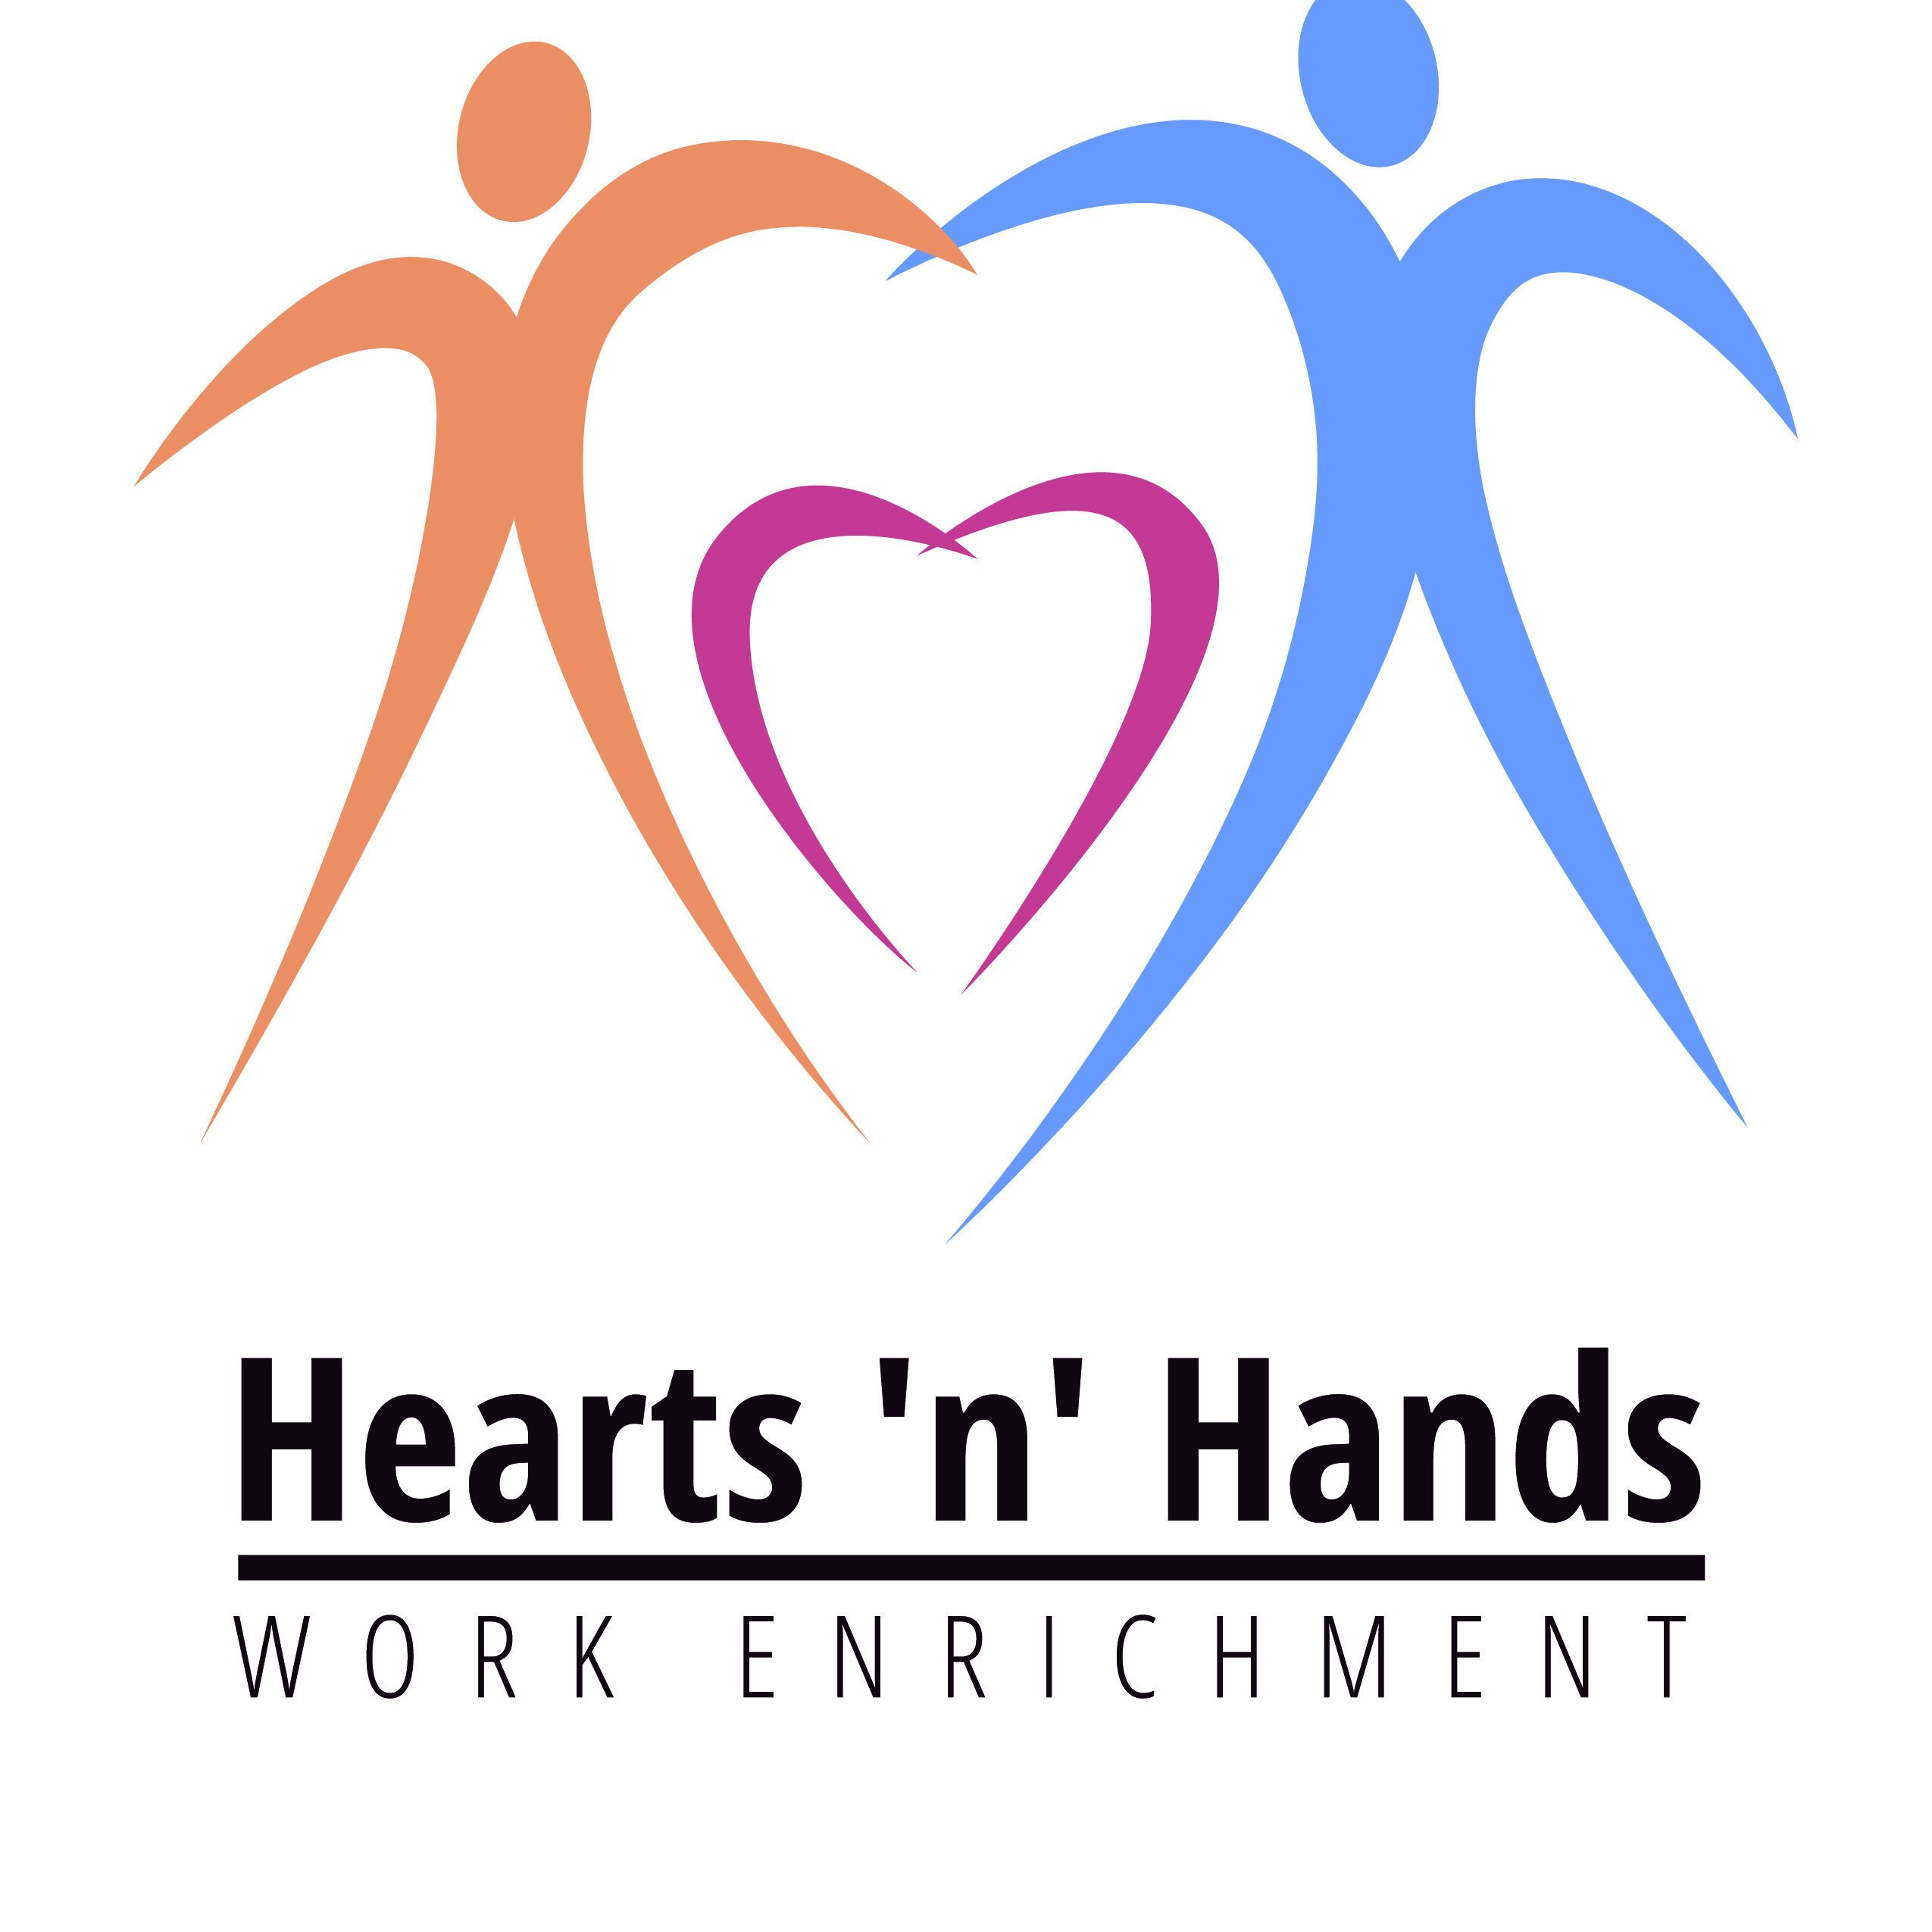 heartsnhands social enterprise